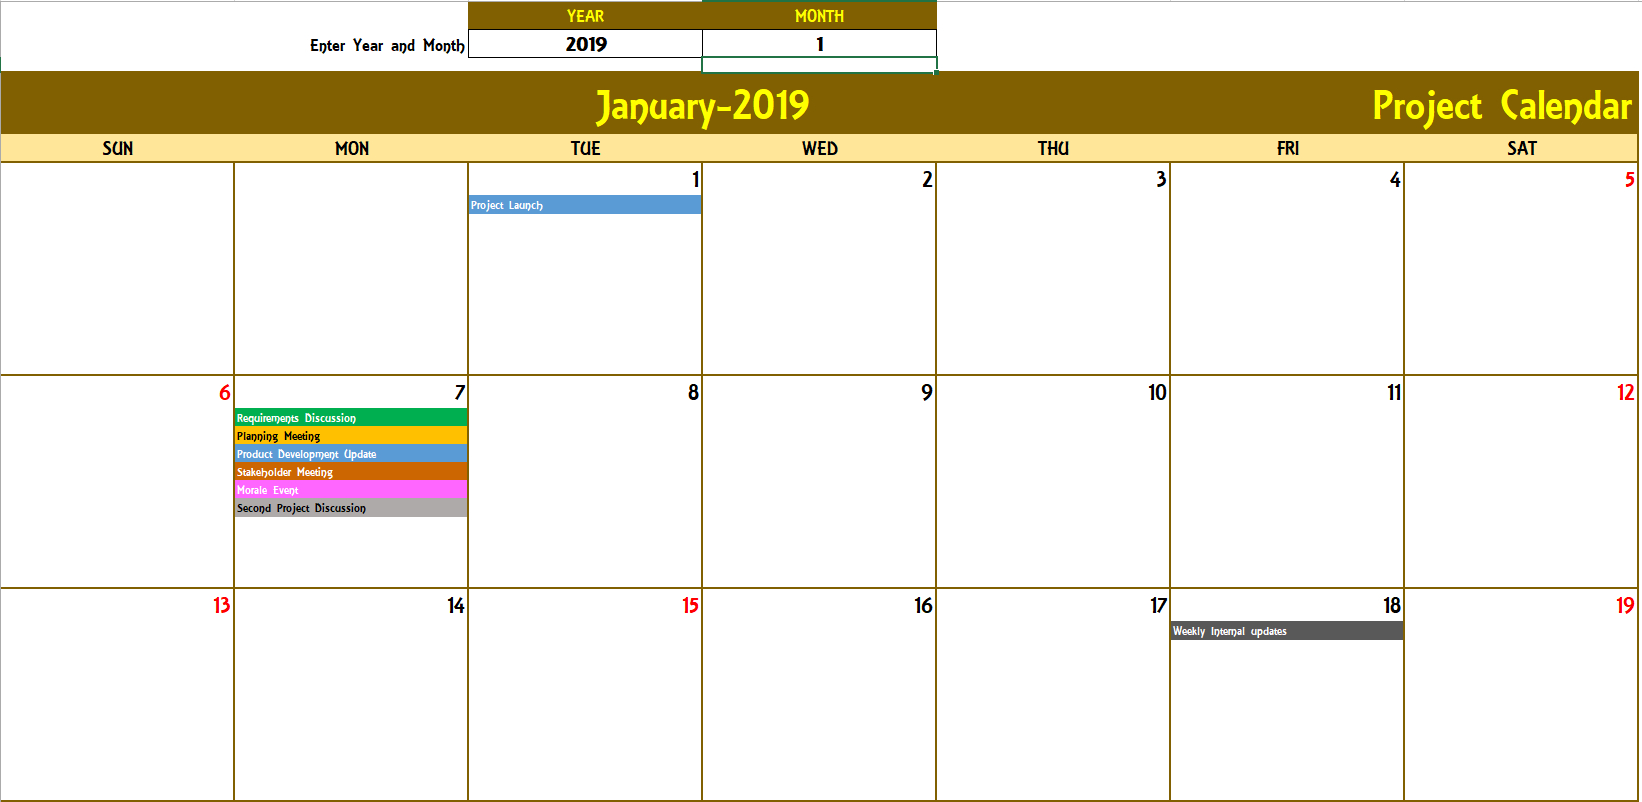 Excel Calendar Template - Excel Calendar 2019, 2020 Or Any Year throughout Monthly Calendar Planner Excel Template